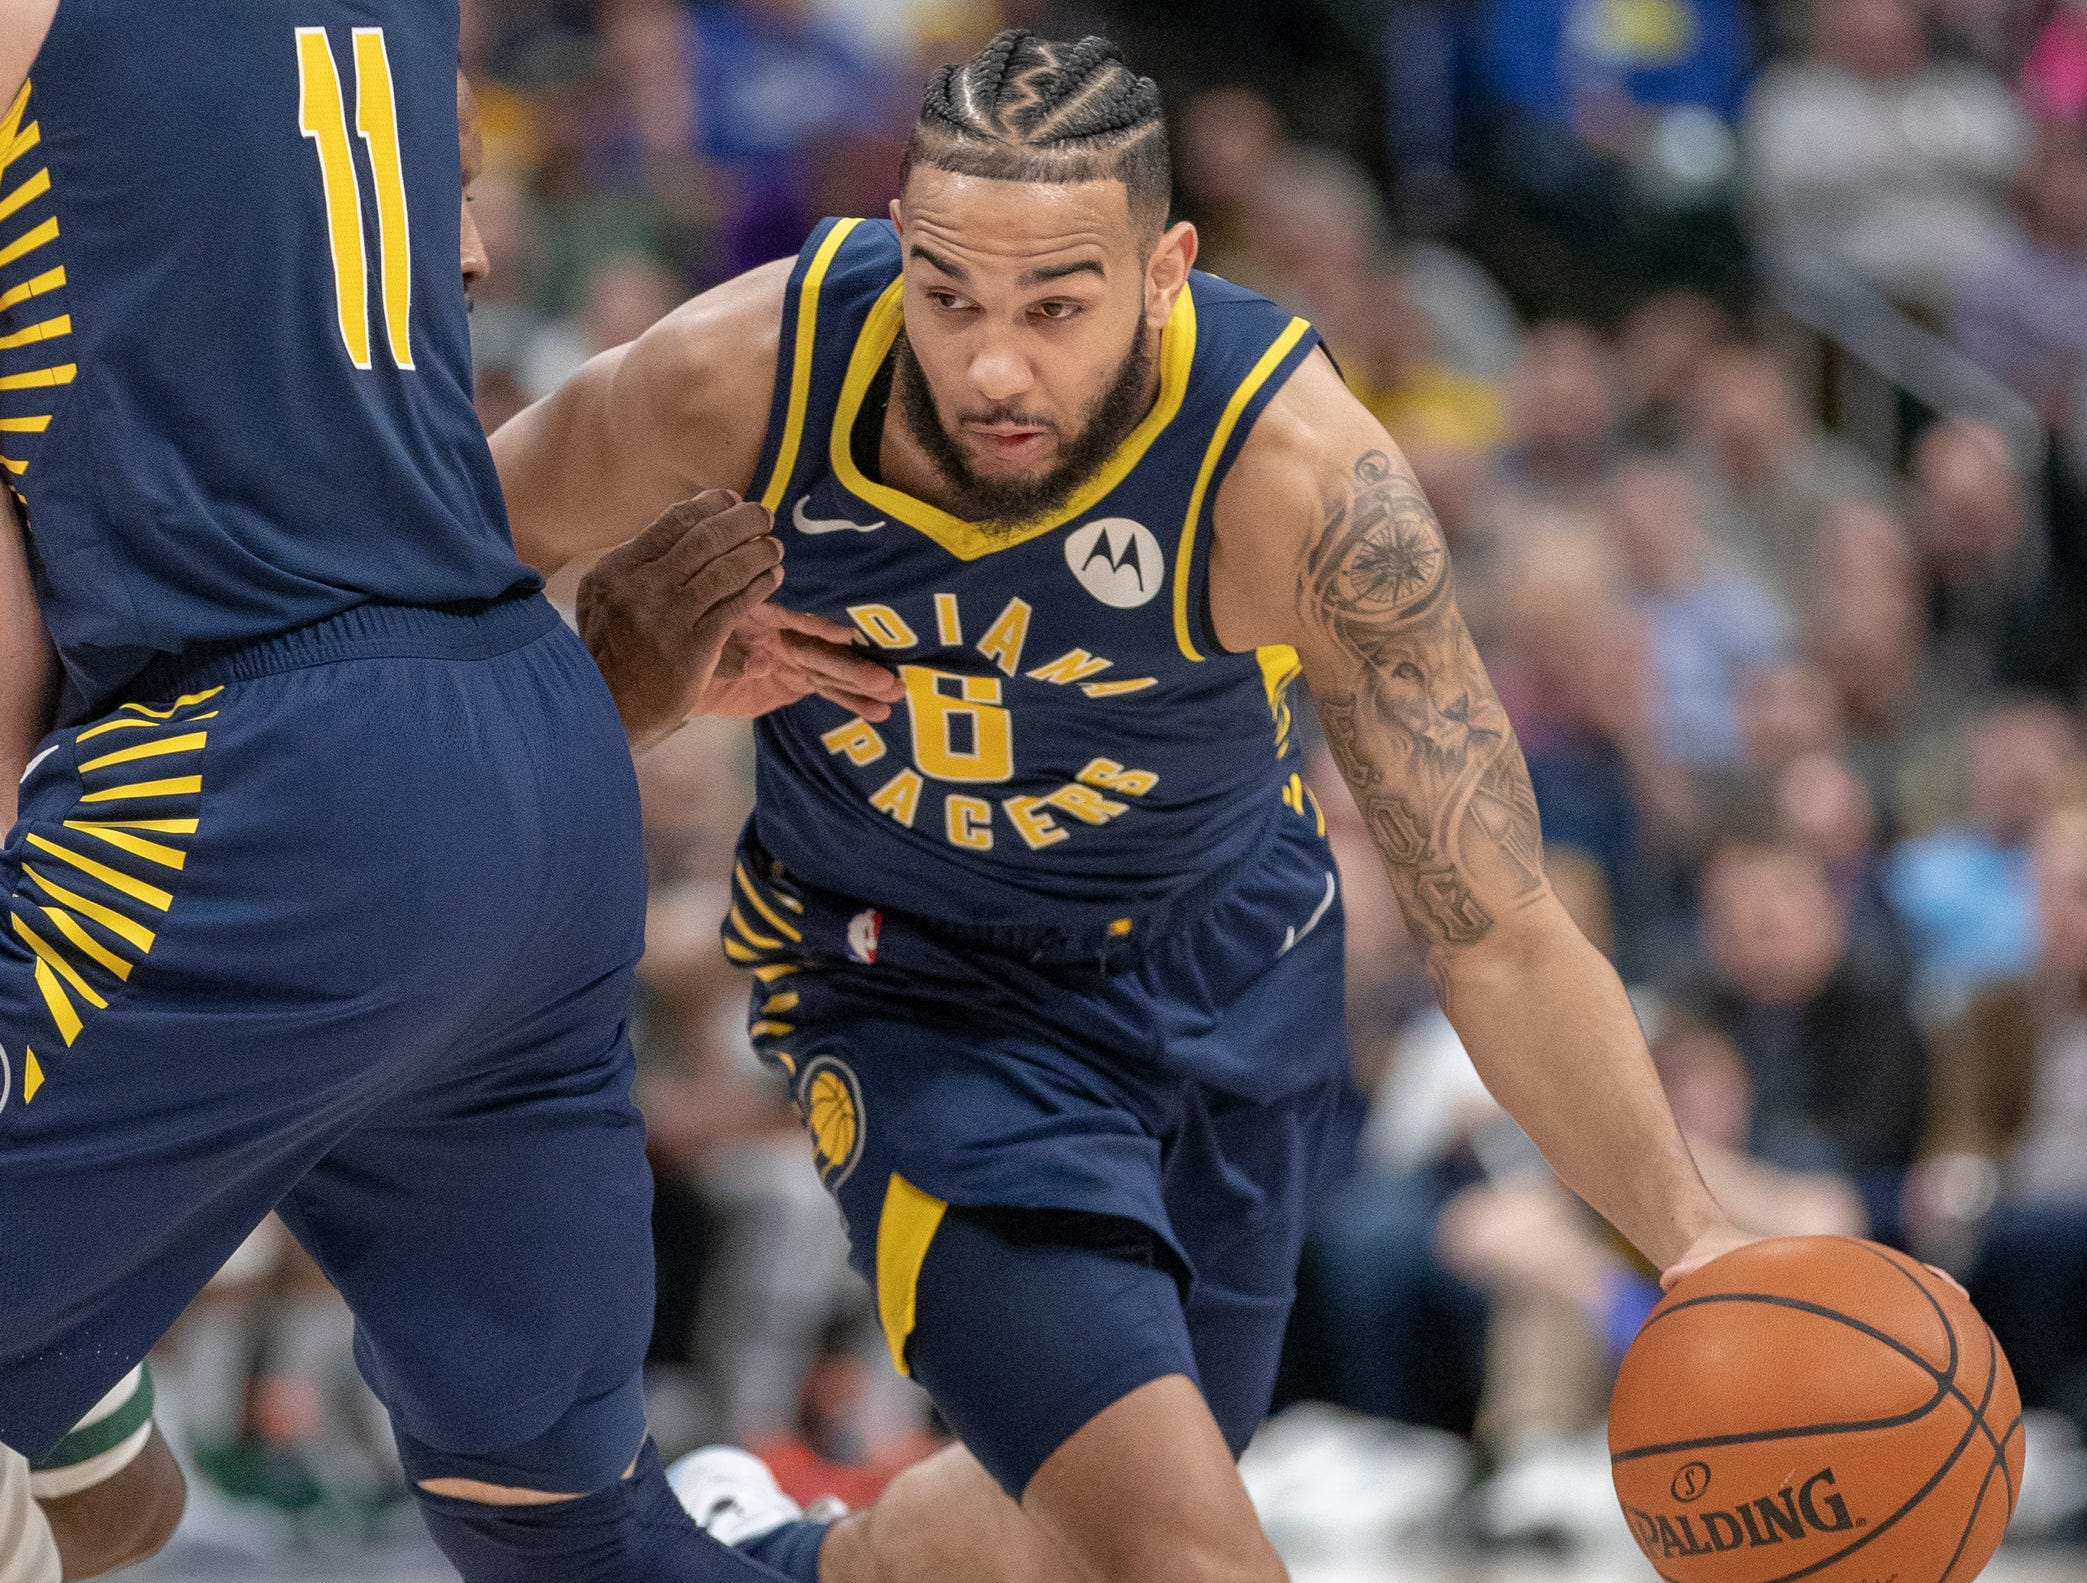 Cory Joseph of the Indiana Pacers works off a screen during action against Milwaukee, Bankers Life Fieldhouse, Indianapolis, Wednesday, Feb. 13, 2019. Milwaukee won 106-97.